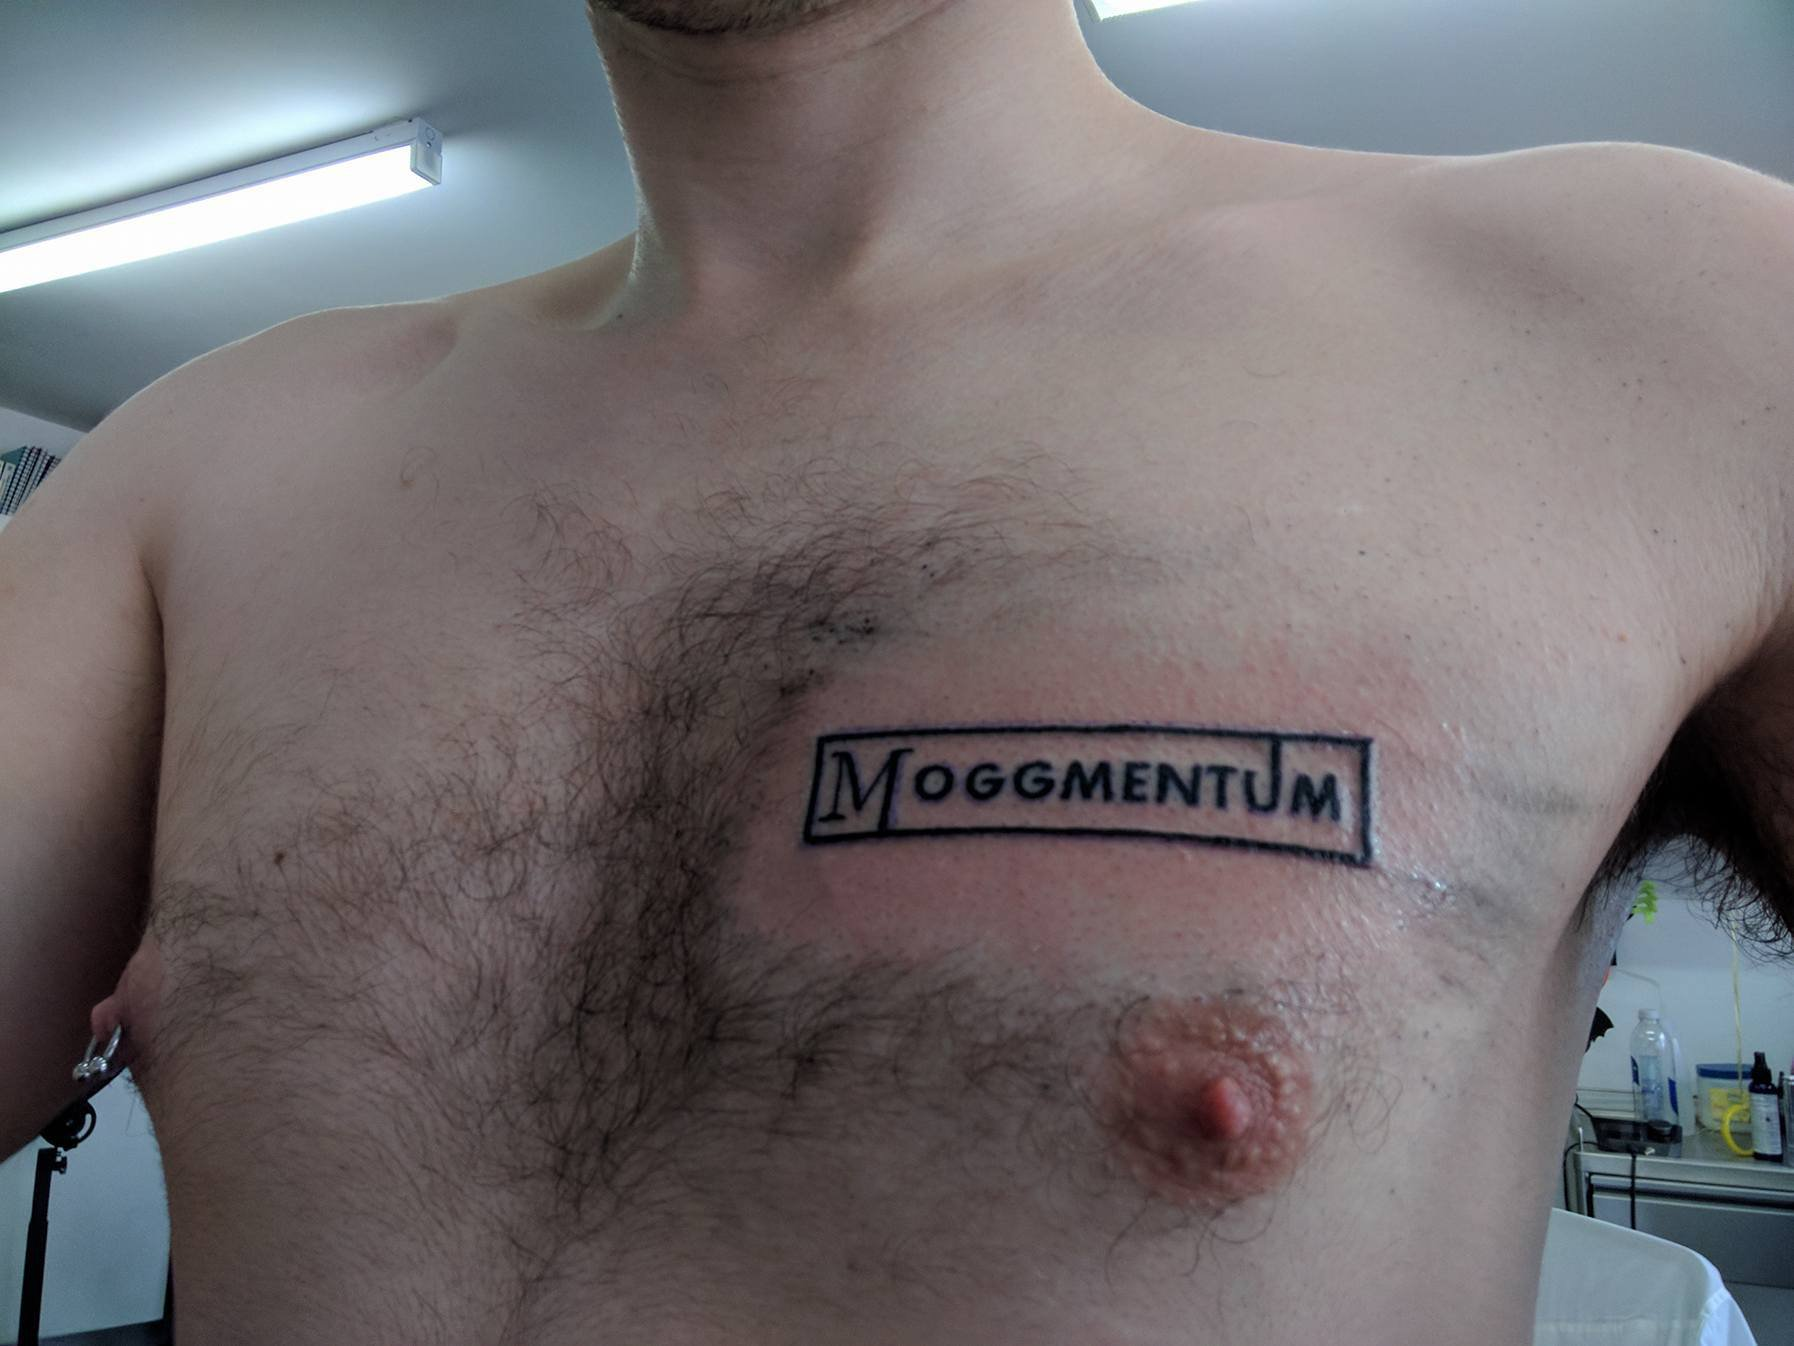 Guy gets tattoo to show how much he loves Jacob Rees-Mogg